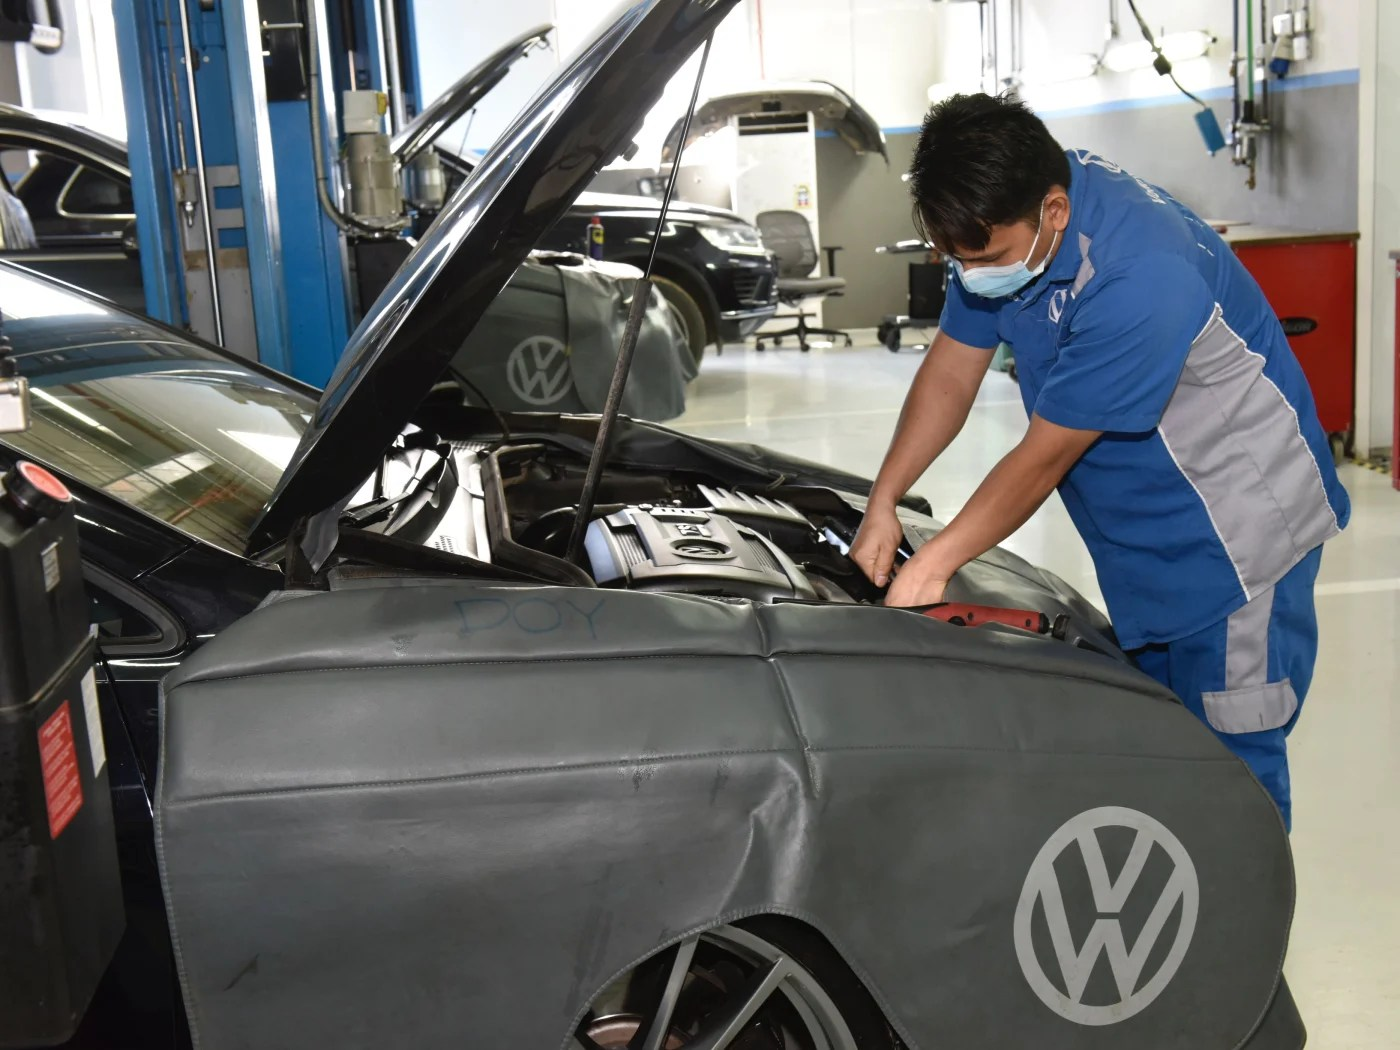 Top 100 call center services april 2021 review this list of best call services on the market to determine the best fit for your company. Contact Us At Volkswagen Service Center Riyadh Samaco Automotive Volkswagen